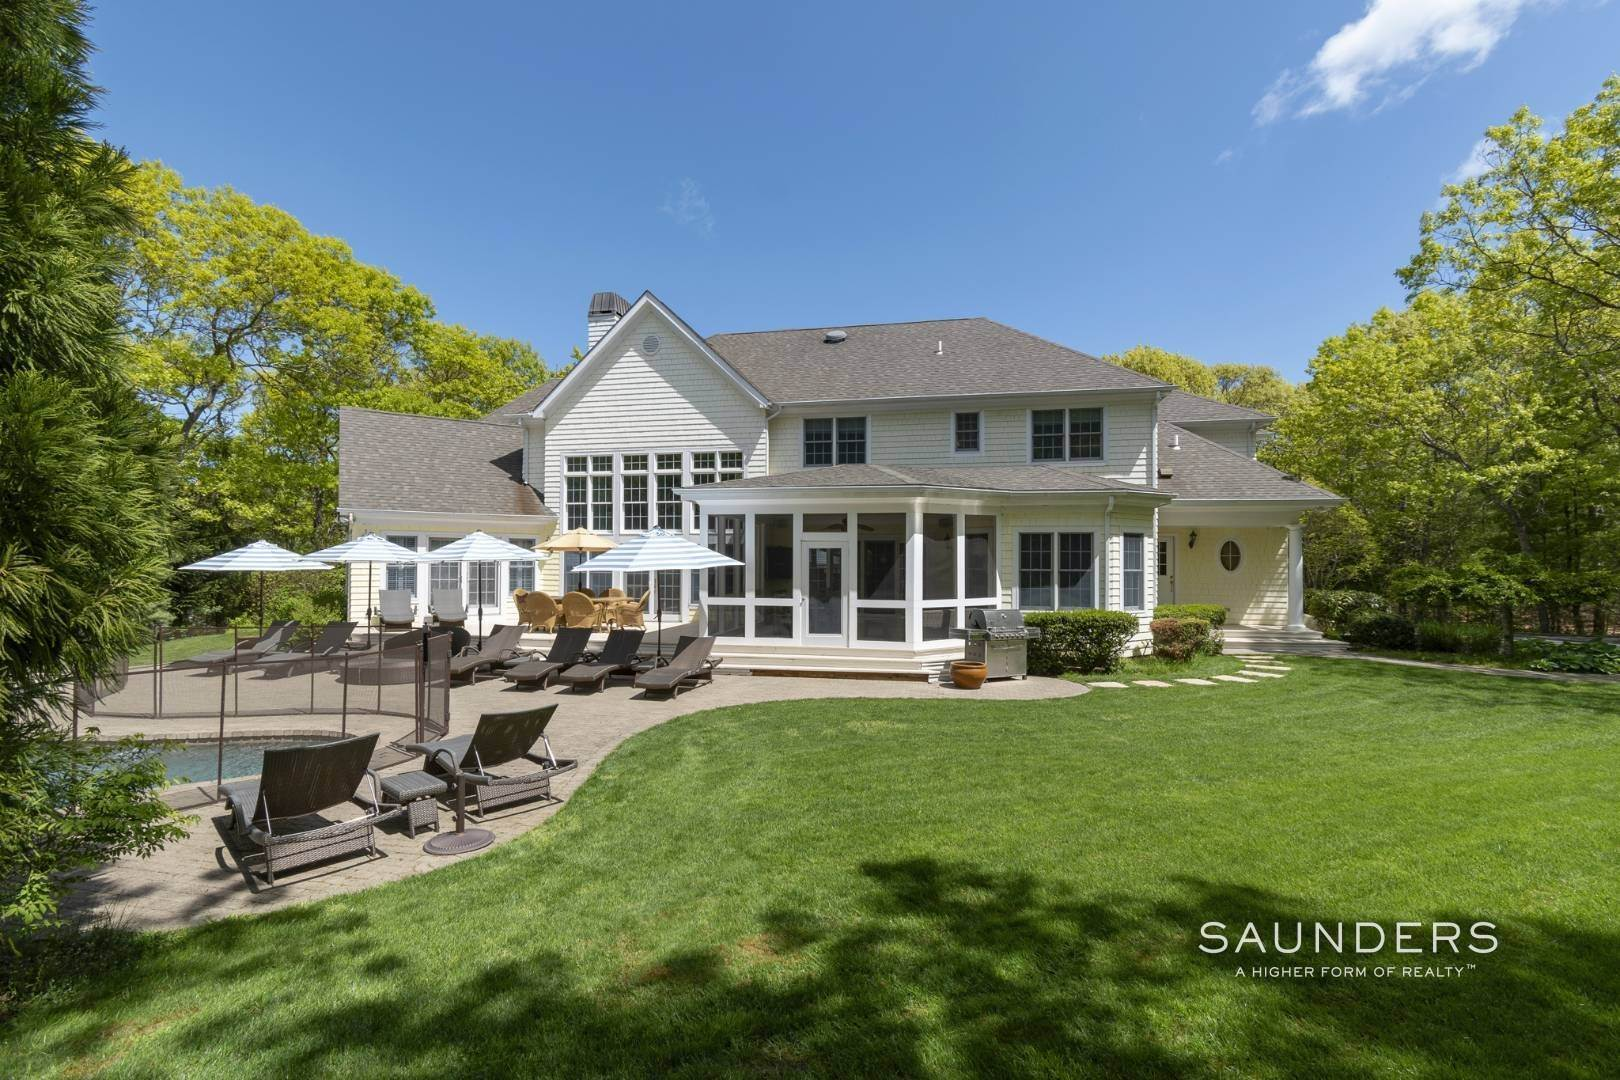 Single Family Homes for Sale at East Hampton Gated With Pool On 2 Acres 13 Old Hollow Lane, East Hampton, East Hampton Town, NY 11937